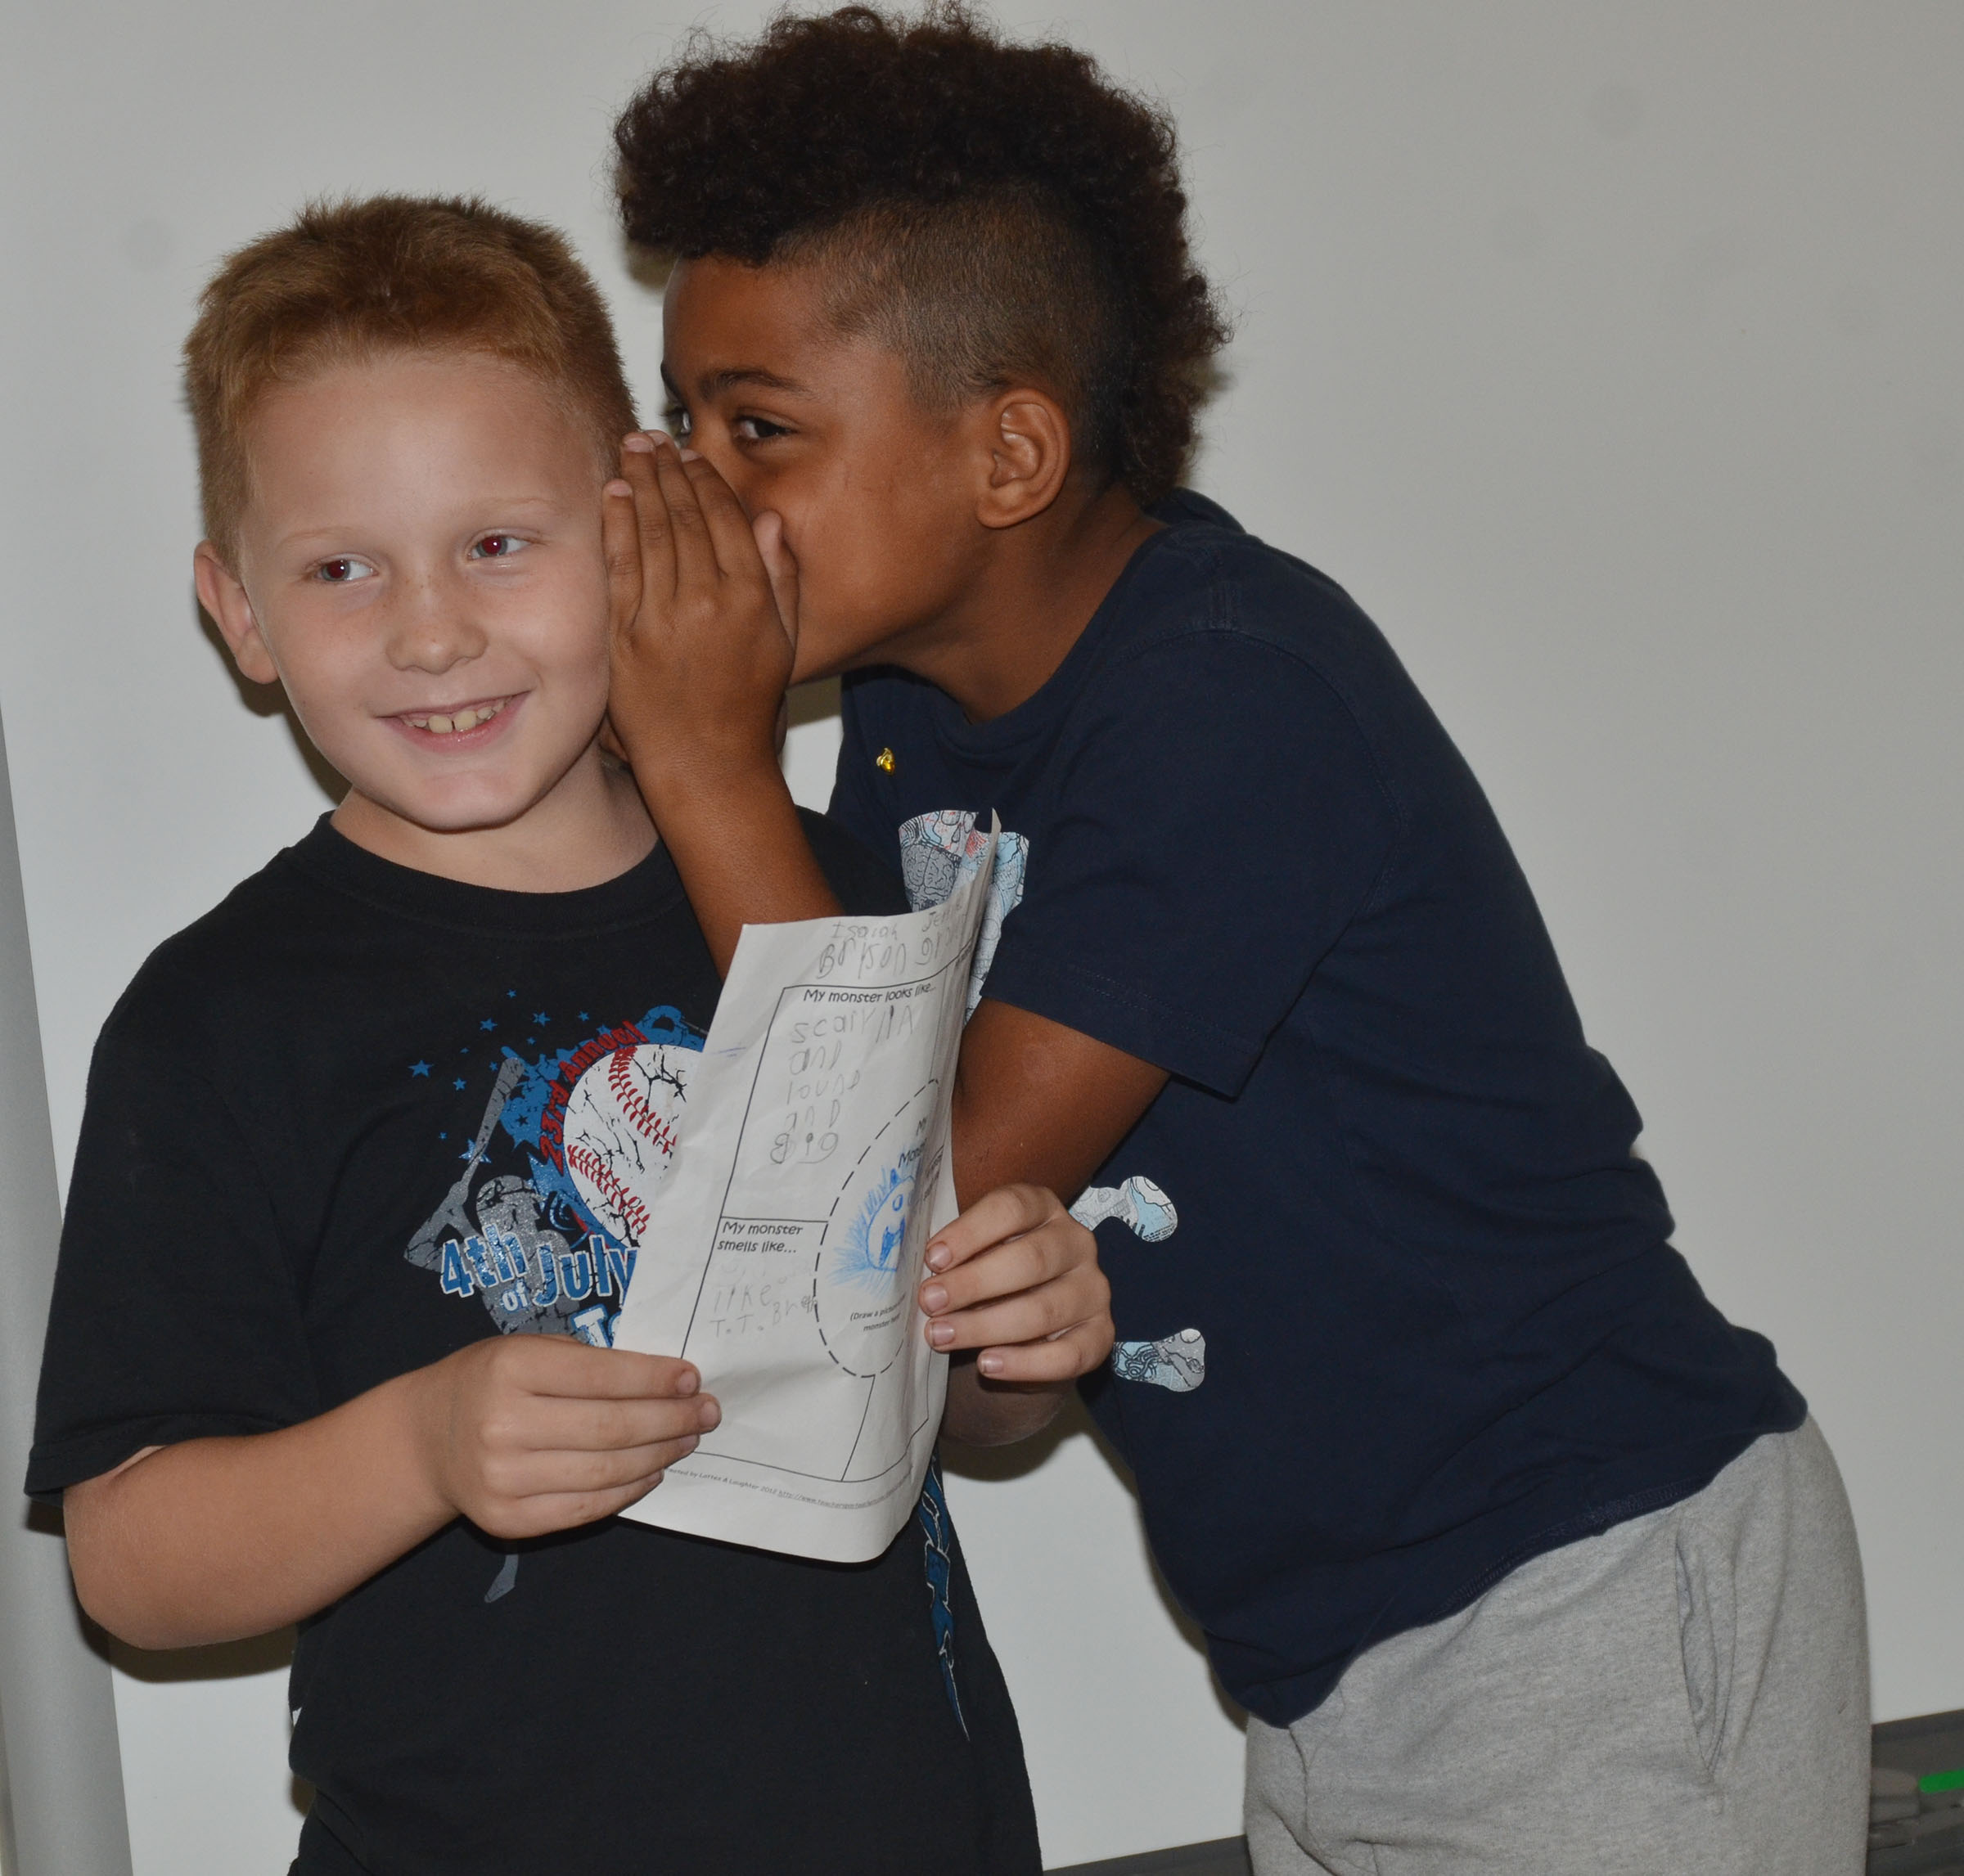 CES third-grader Bryson Groves whispers something to Isaiah Jeffries about their monster so they can tell their classmates.